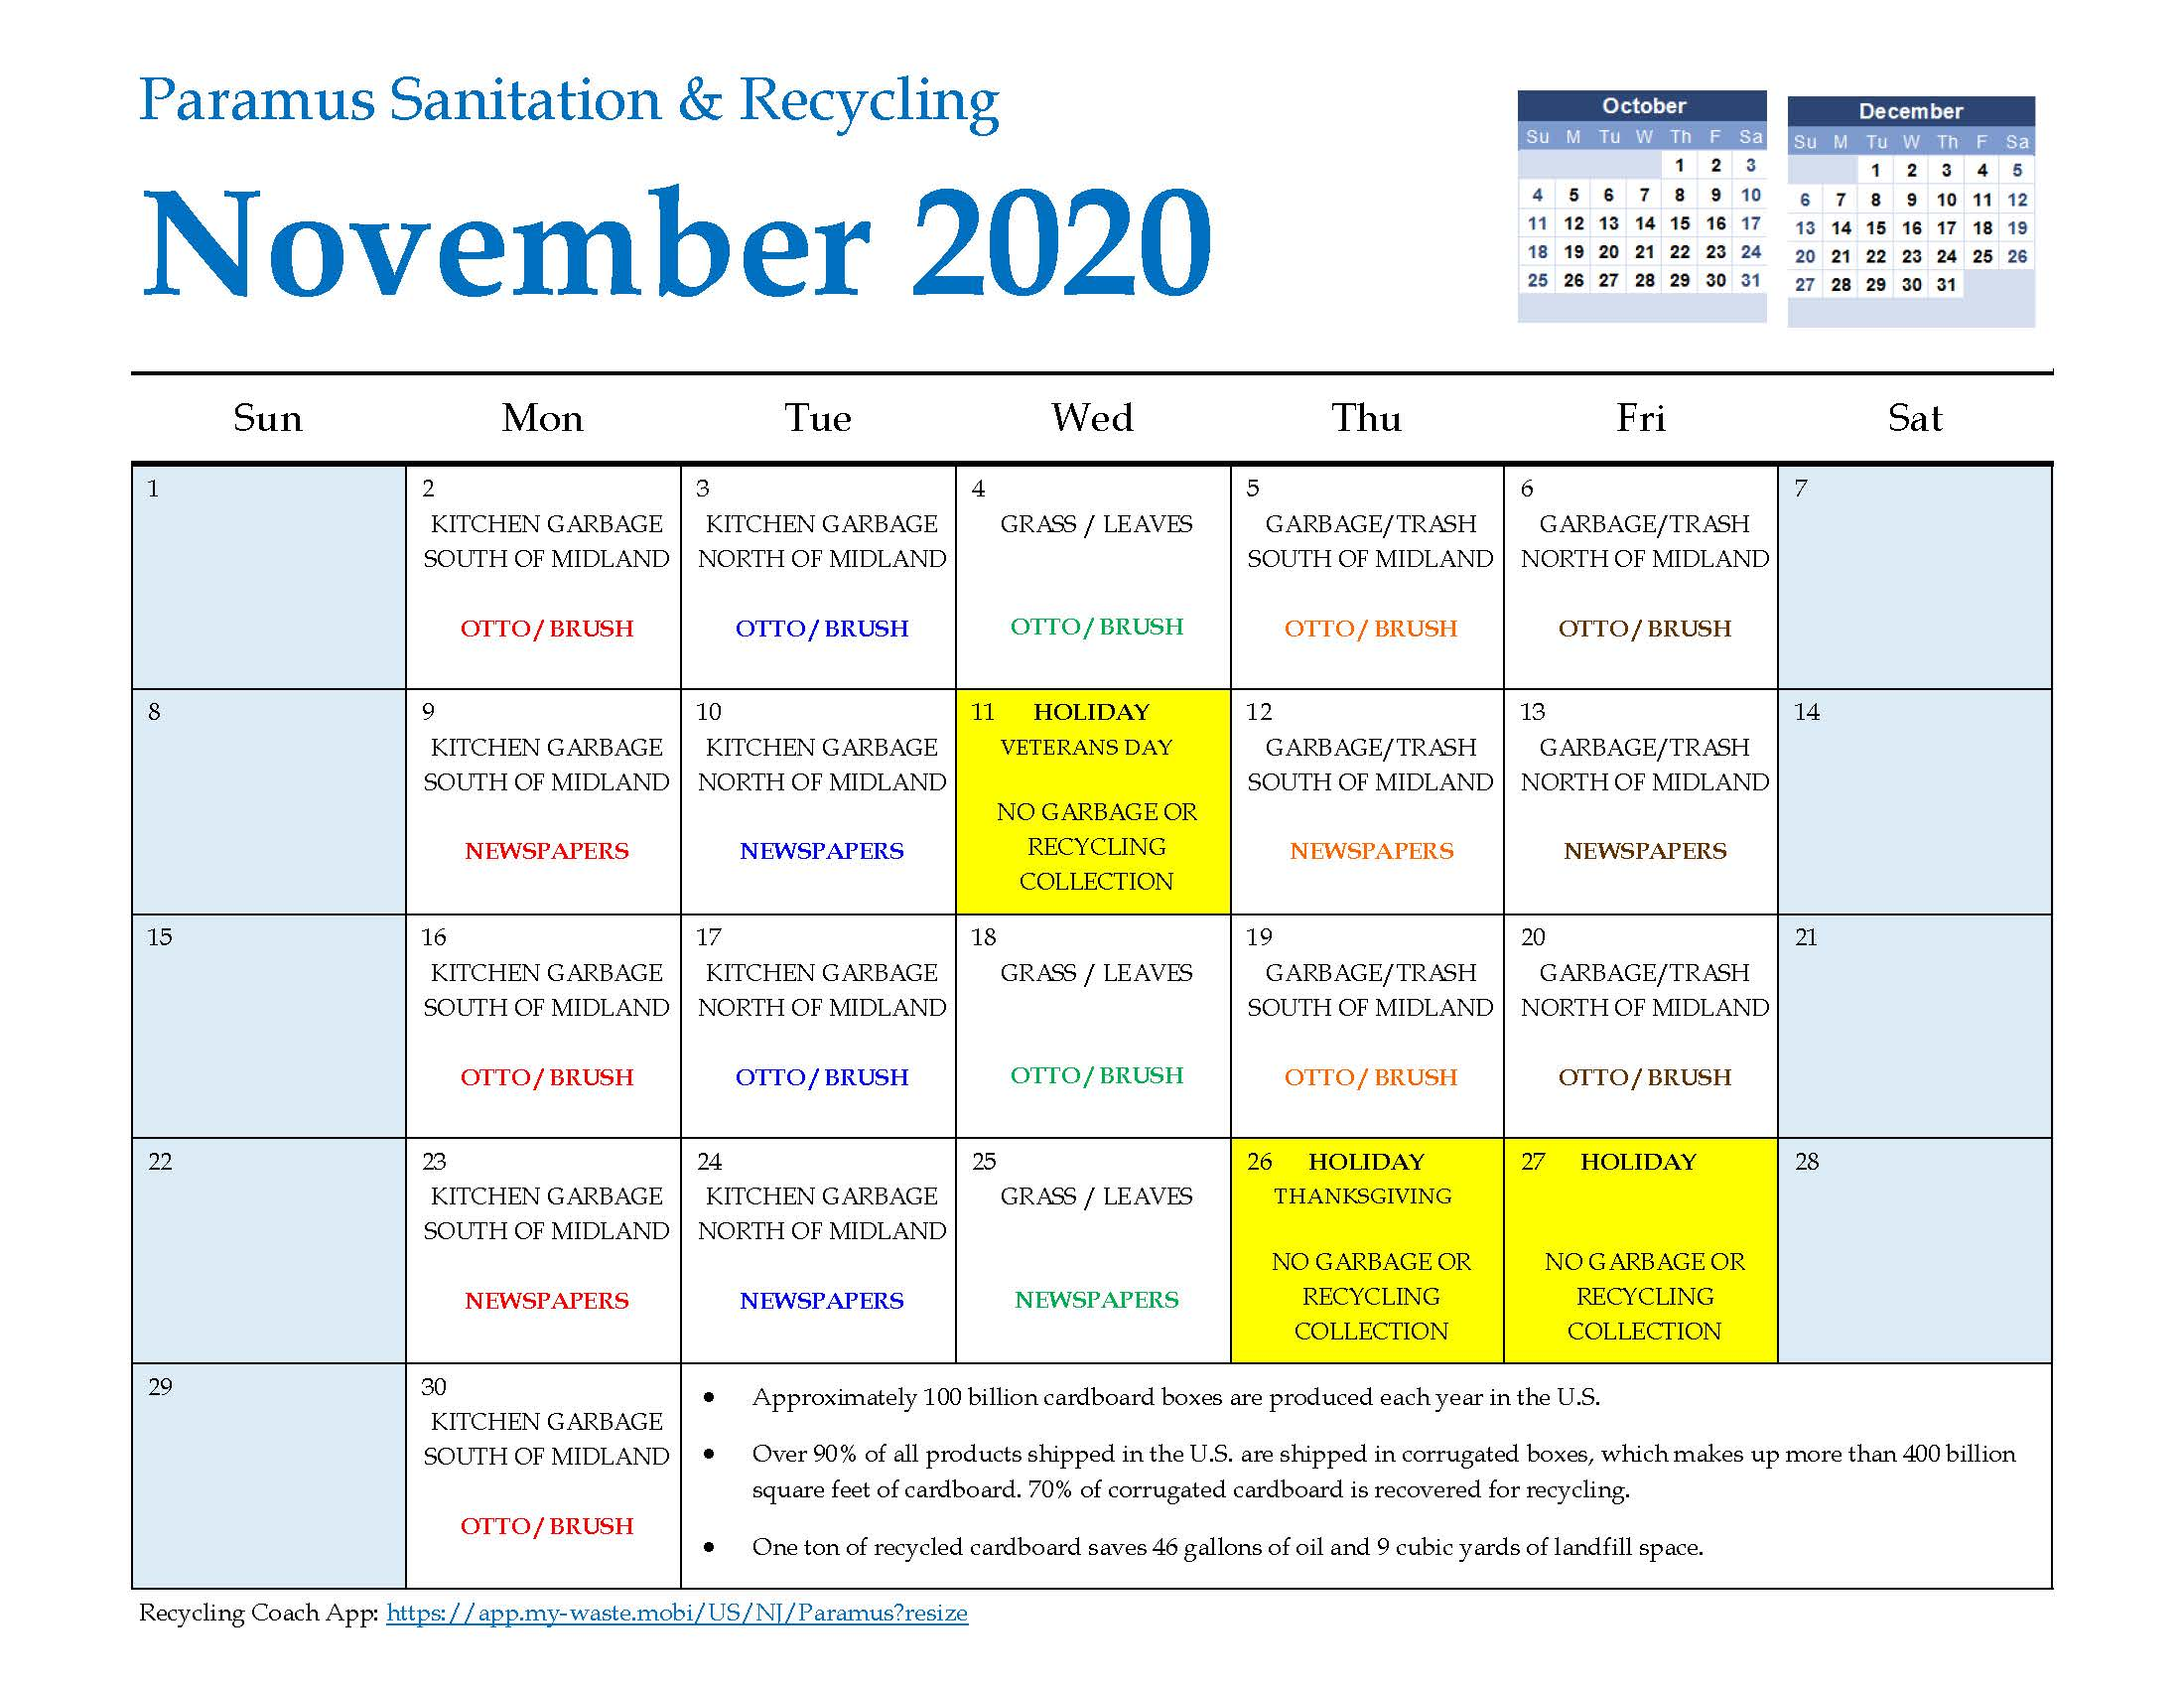 2020 Paramus Recycling Calendar November